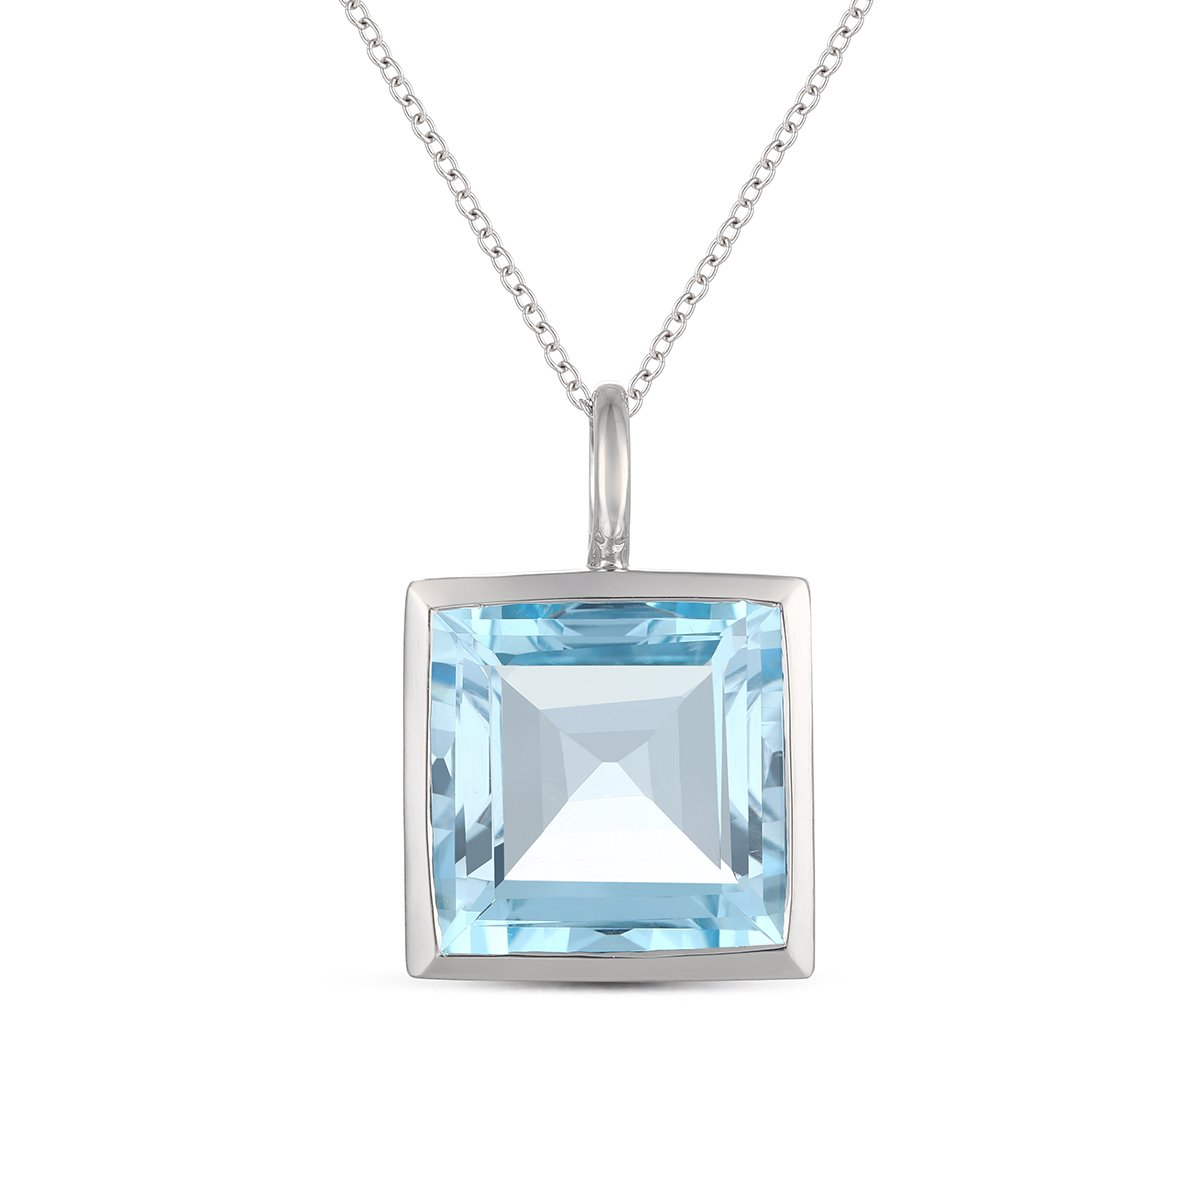 Easter Offer, Jewel Ivy 925 Sterling Silver Pendant with Sky Blue Topaz by Jewel Ivy (Image #1)